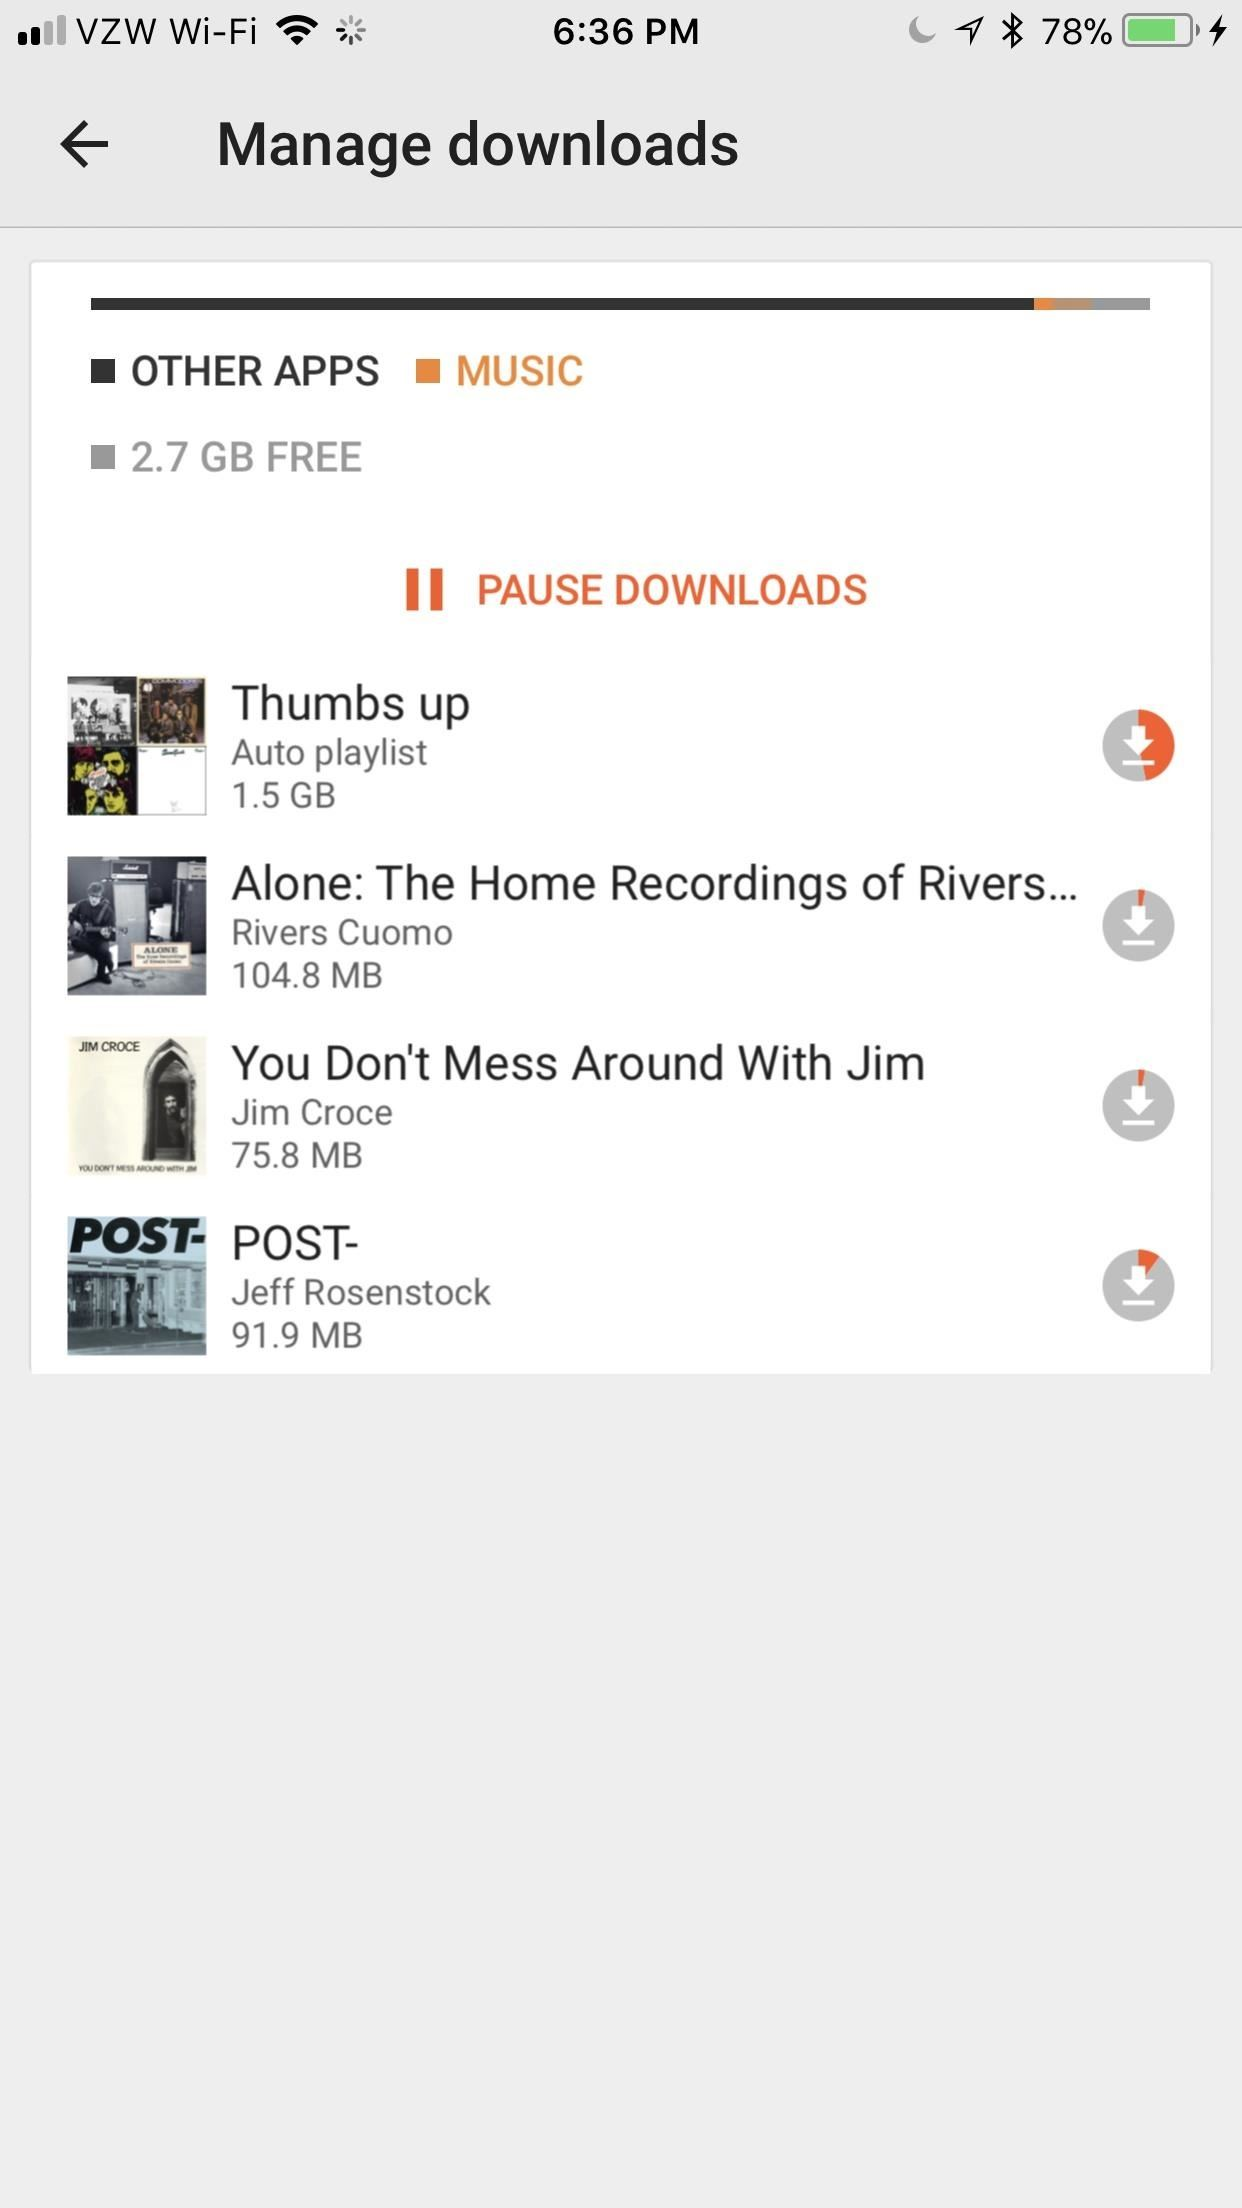 Google Play Music 101: How to Adjust Music Quality to Save Data While Listening